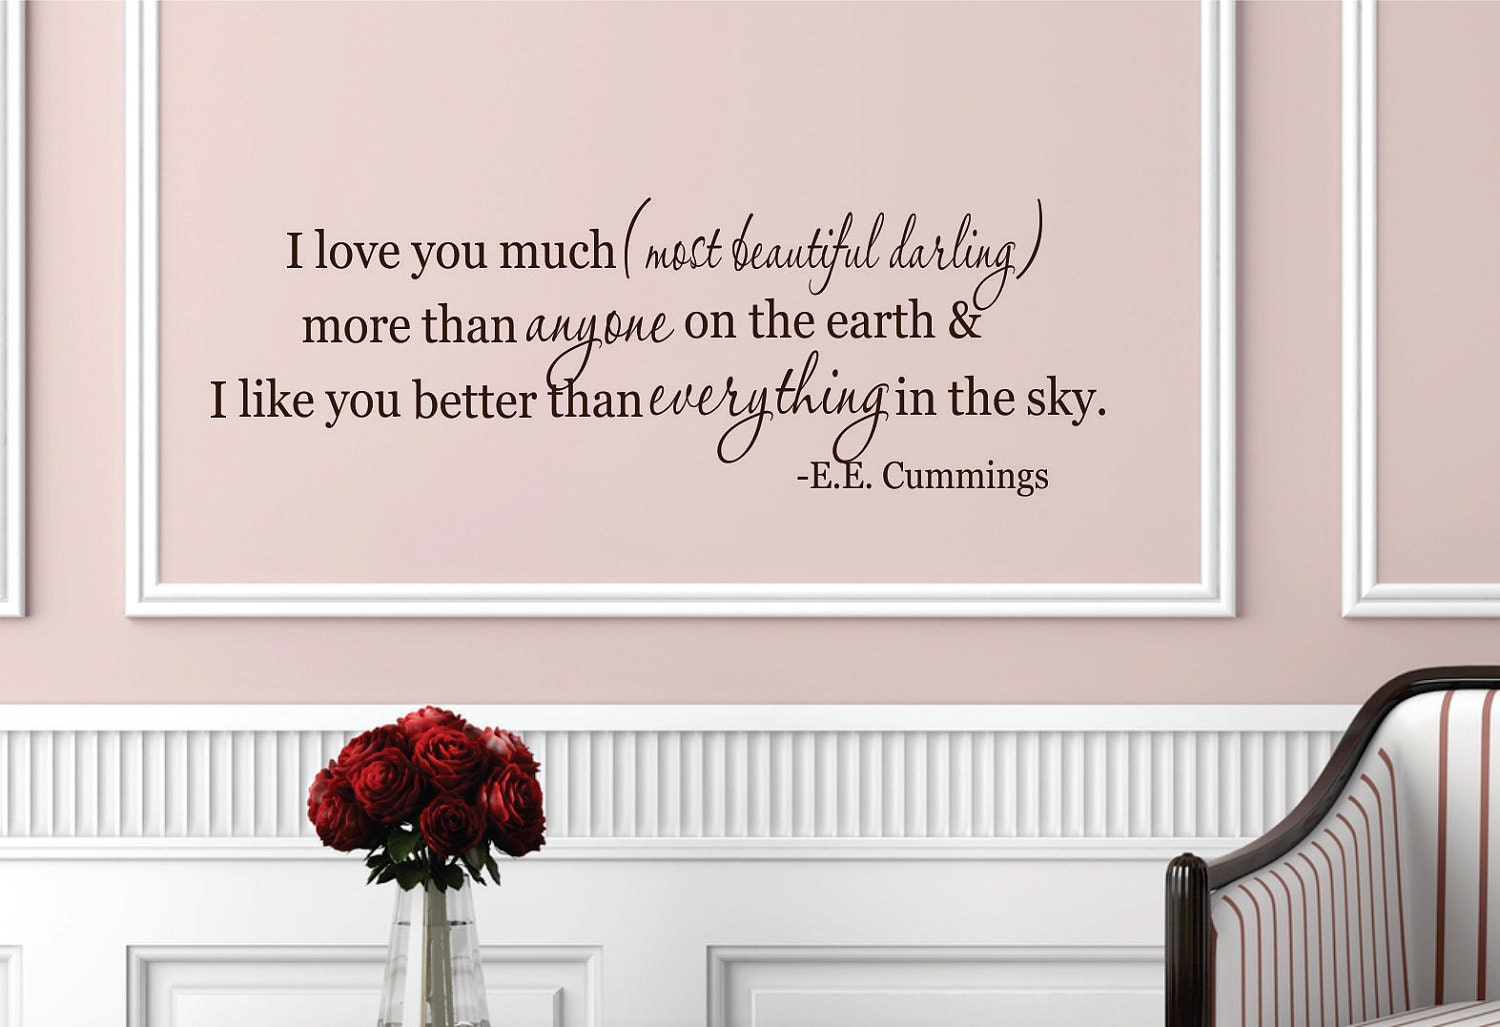 I love you much wall decal quote wall decal home decor for Dining room wall quote decals